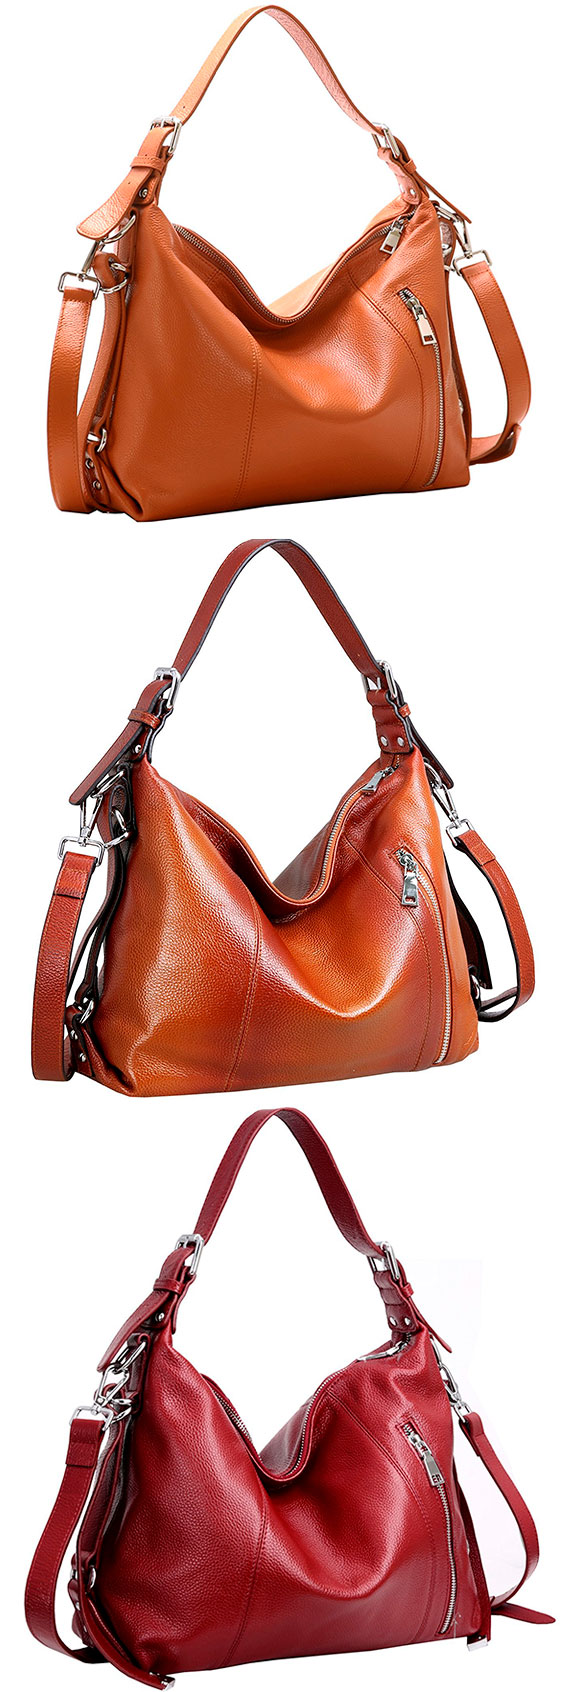 Heshe Leather Cross Body Hobo Bag – Best Satchel Leather Hobo Shoulder Bag  The Heshe provides one of the larger and robust shoulder bags available. 60e6cb0ea007c